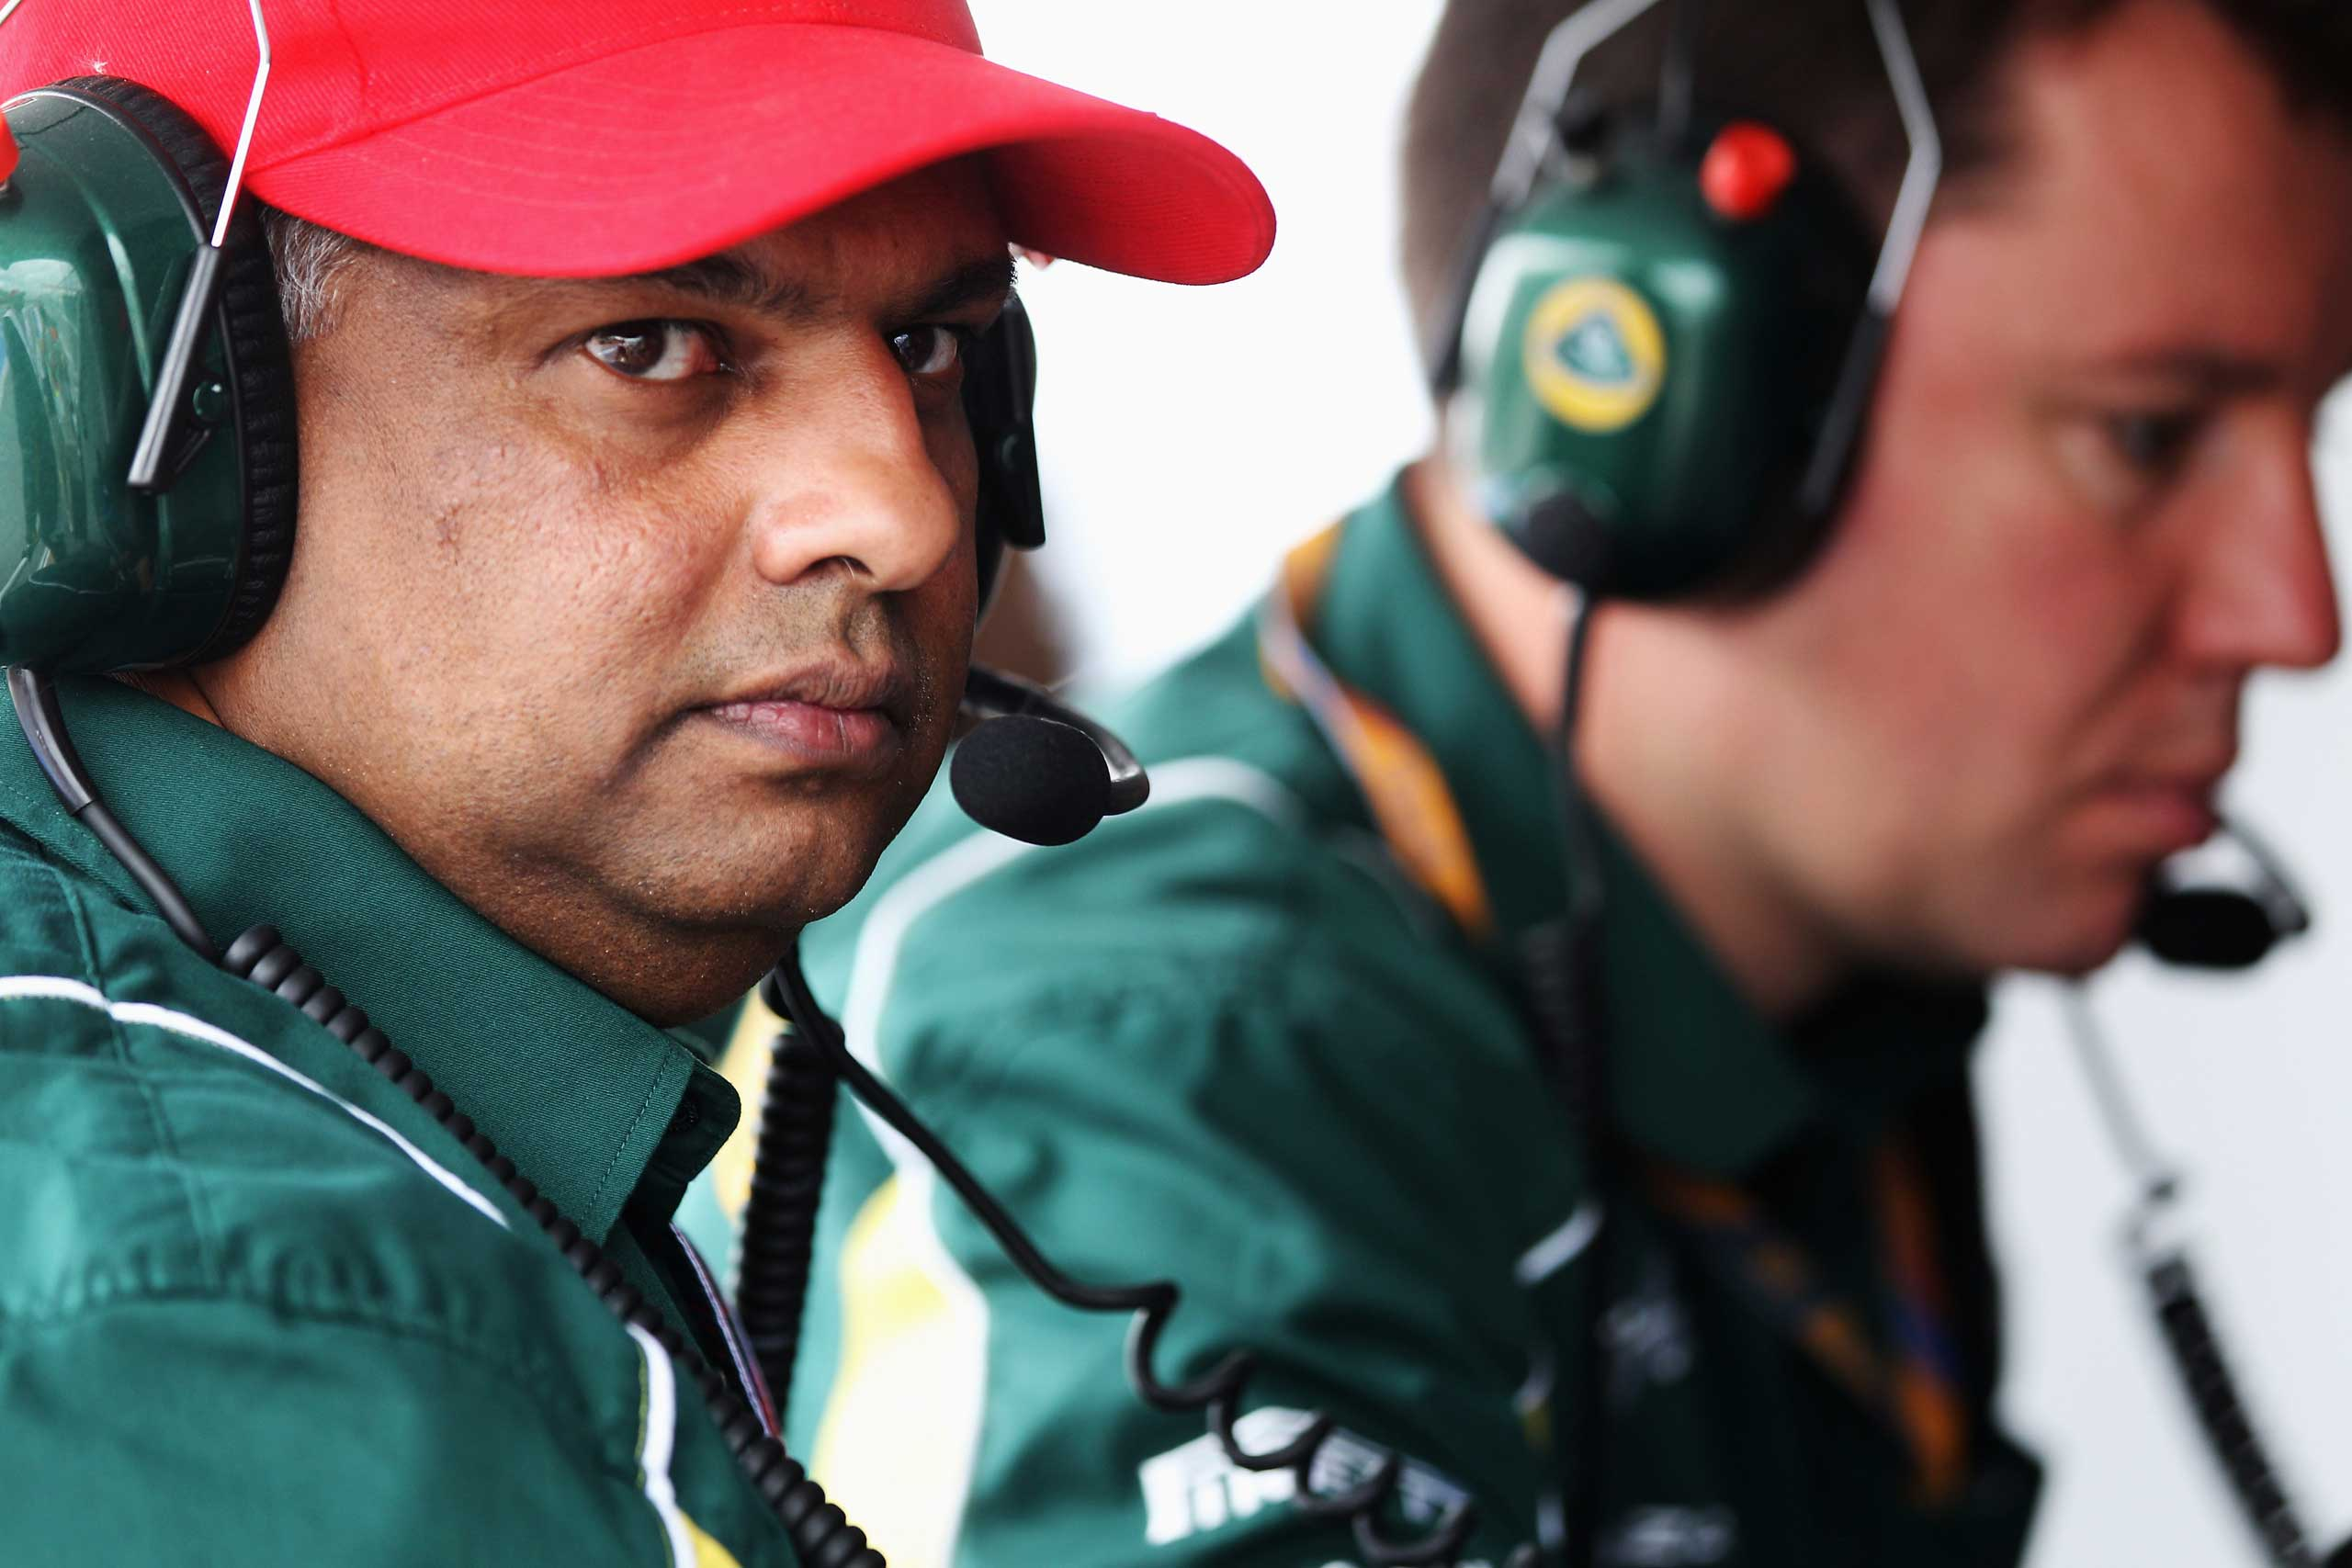 In addition to AirAsia, Fernandes' other ventures include a budget hotel chain, auto racing, and soccer. Here, Fernandes, then Team Lotus Principal, is seen during qualifying for the Canadian Formula One Grand Prix at the Circuit Gilles Villeneuve on June 11, 2011 in Montreal.